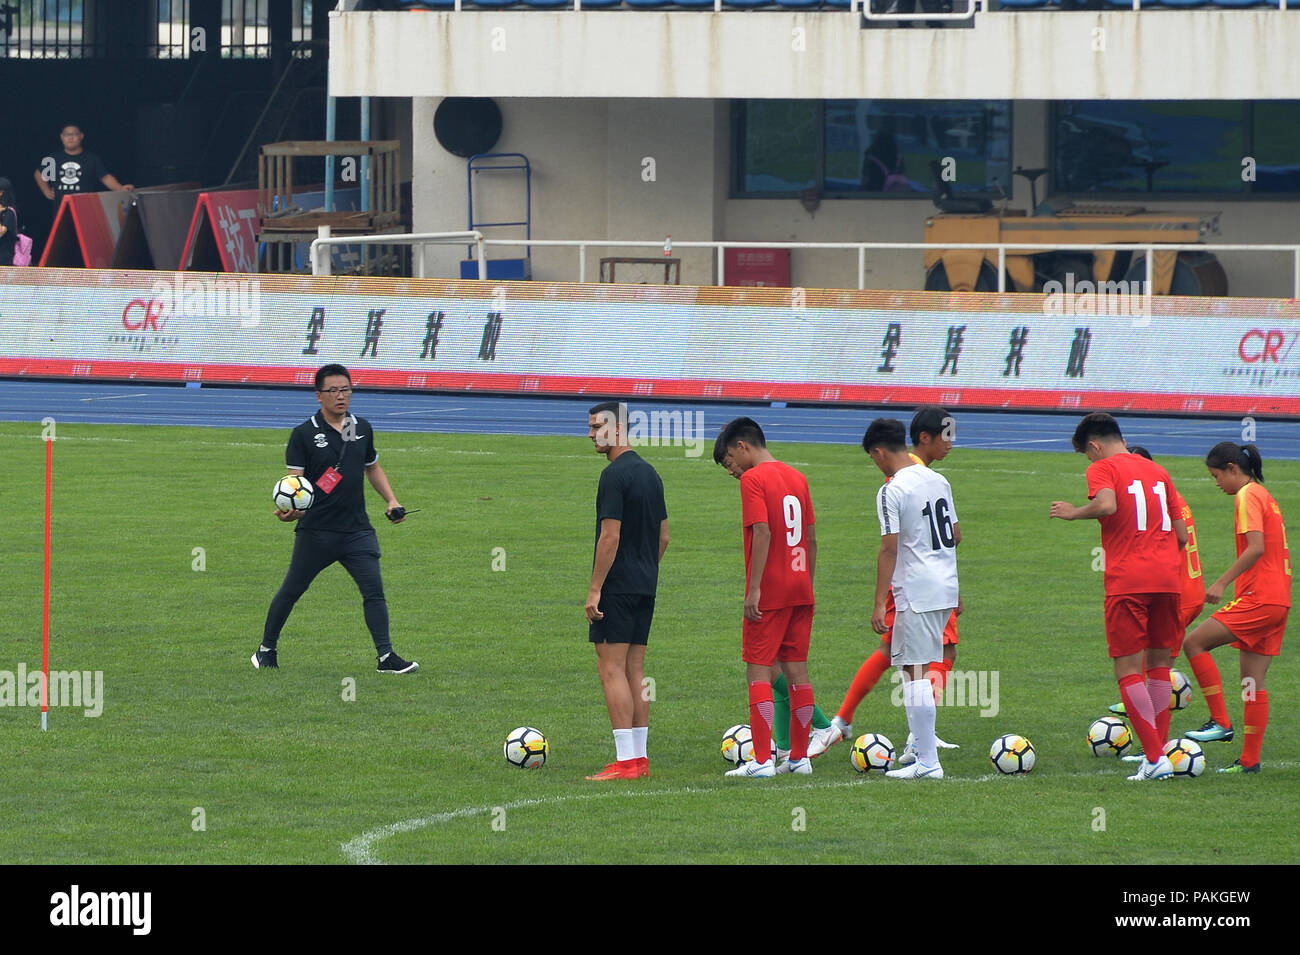 Beijin, Beijin, China. 24th July, 2018. Beijing, CHINA-Portuguese professional footballer Cristiano Ronaldo interacts with Chinese young football players at Beijing Olympic Sports Center in Beijing, China. Credit: SIPA Asia/ZUMA Wire/Alamy Live News - Stock Image